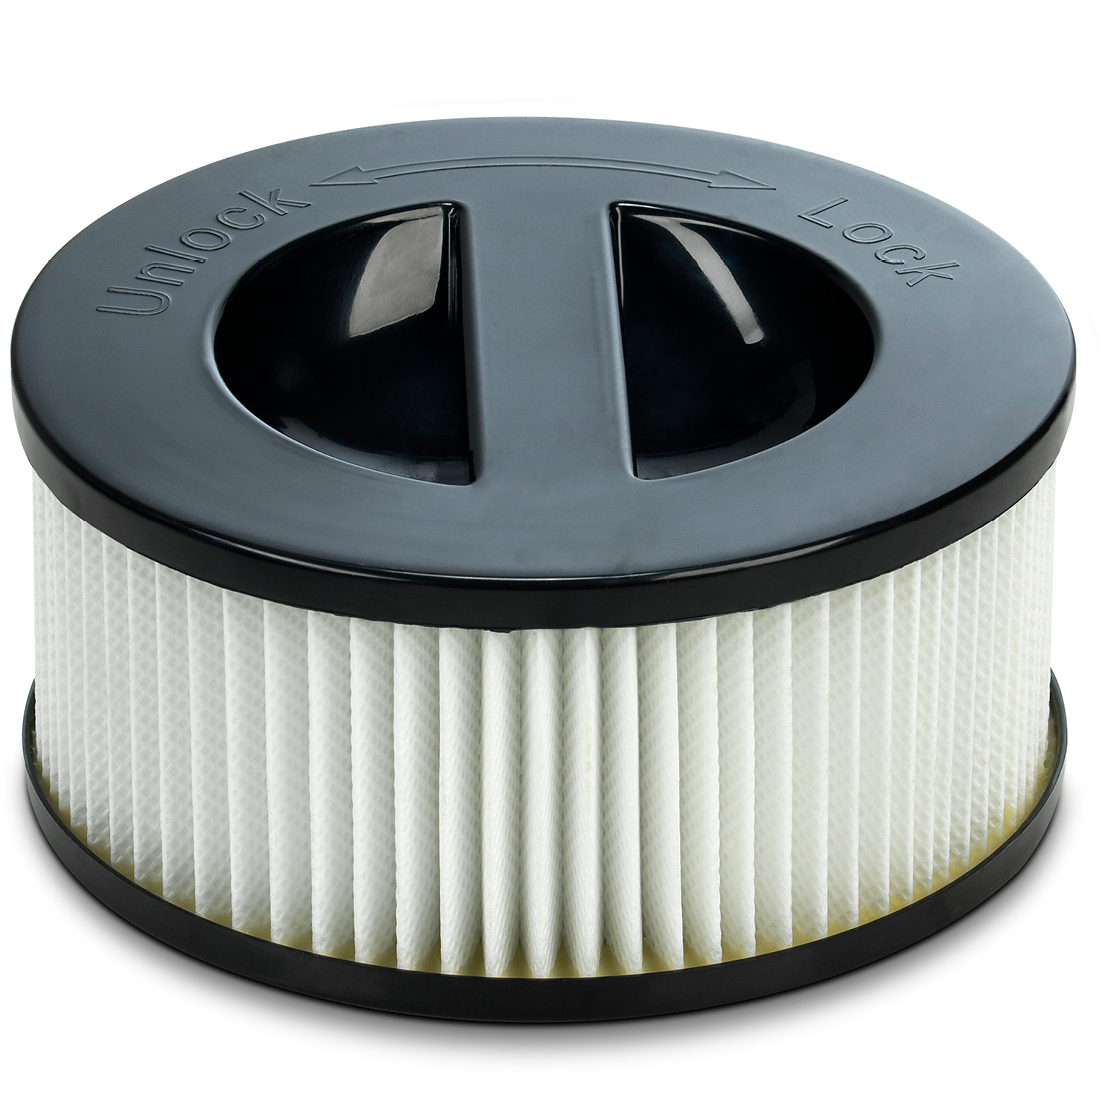 An image of Rovus Victor Vac HEPA Filter